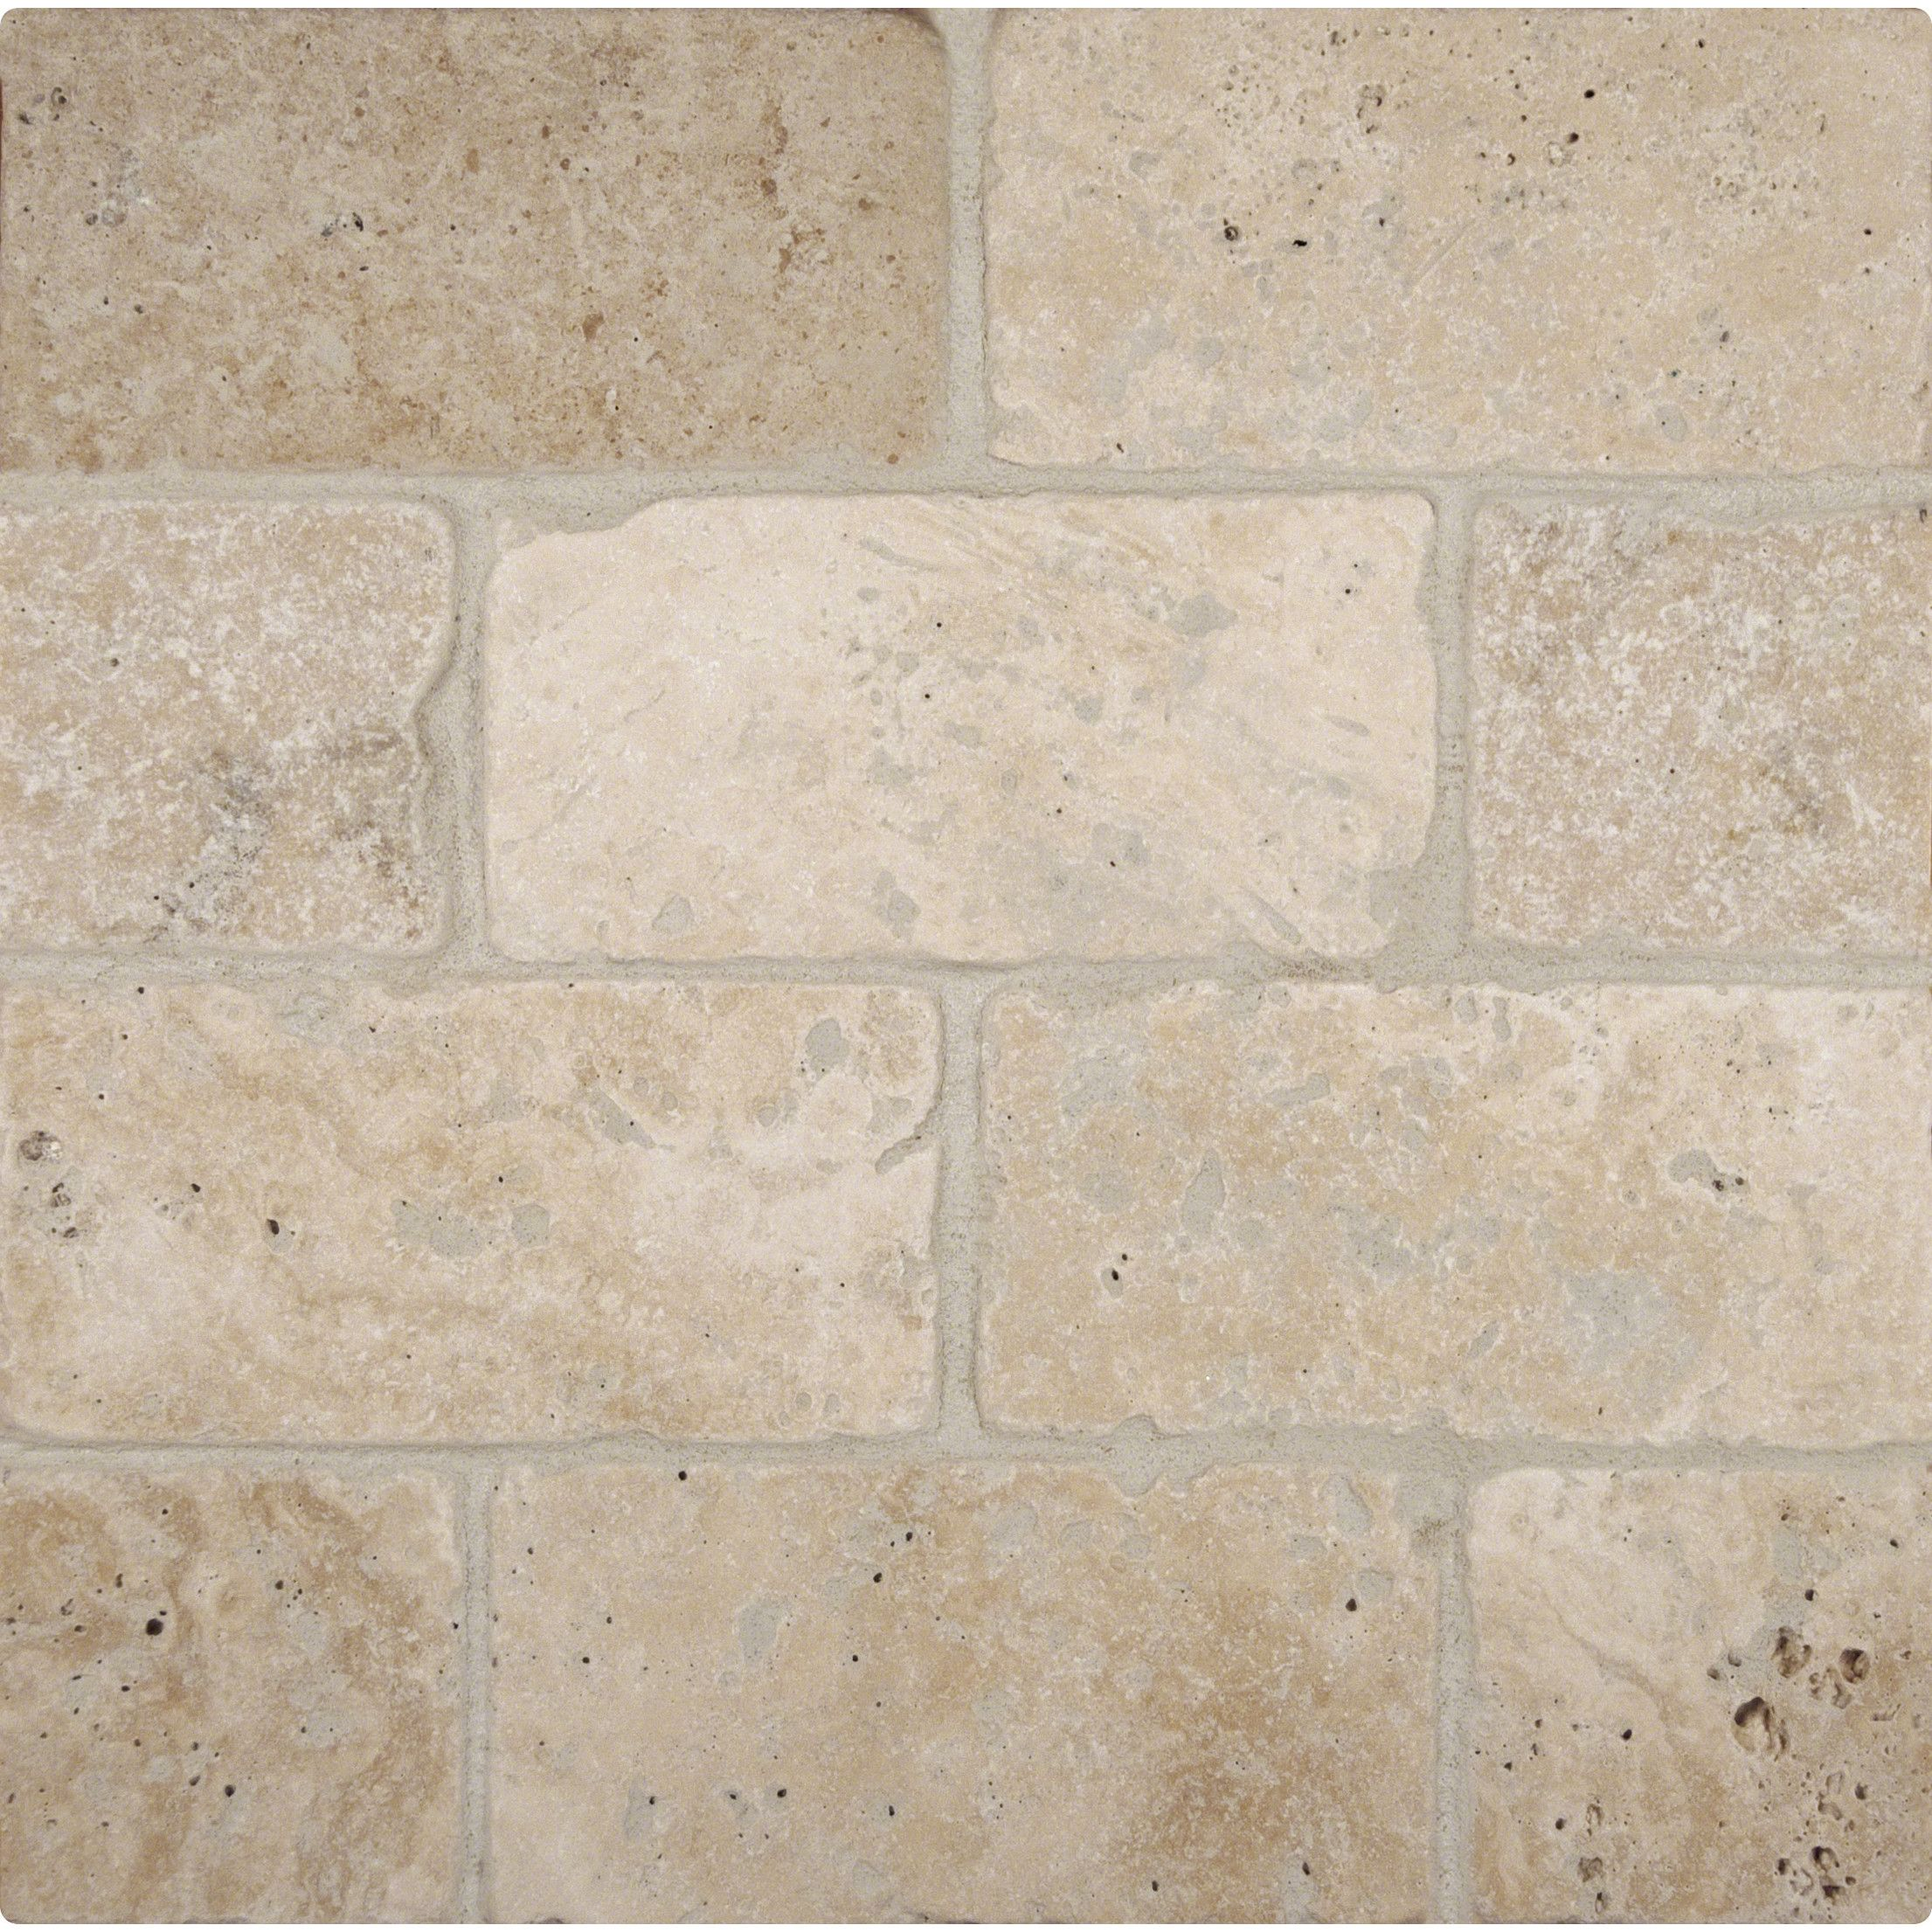 Tuscany Classic 3 X 6 Travertine Subway Tile In Tumbled Beige